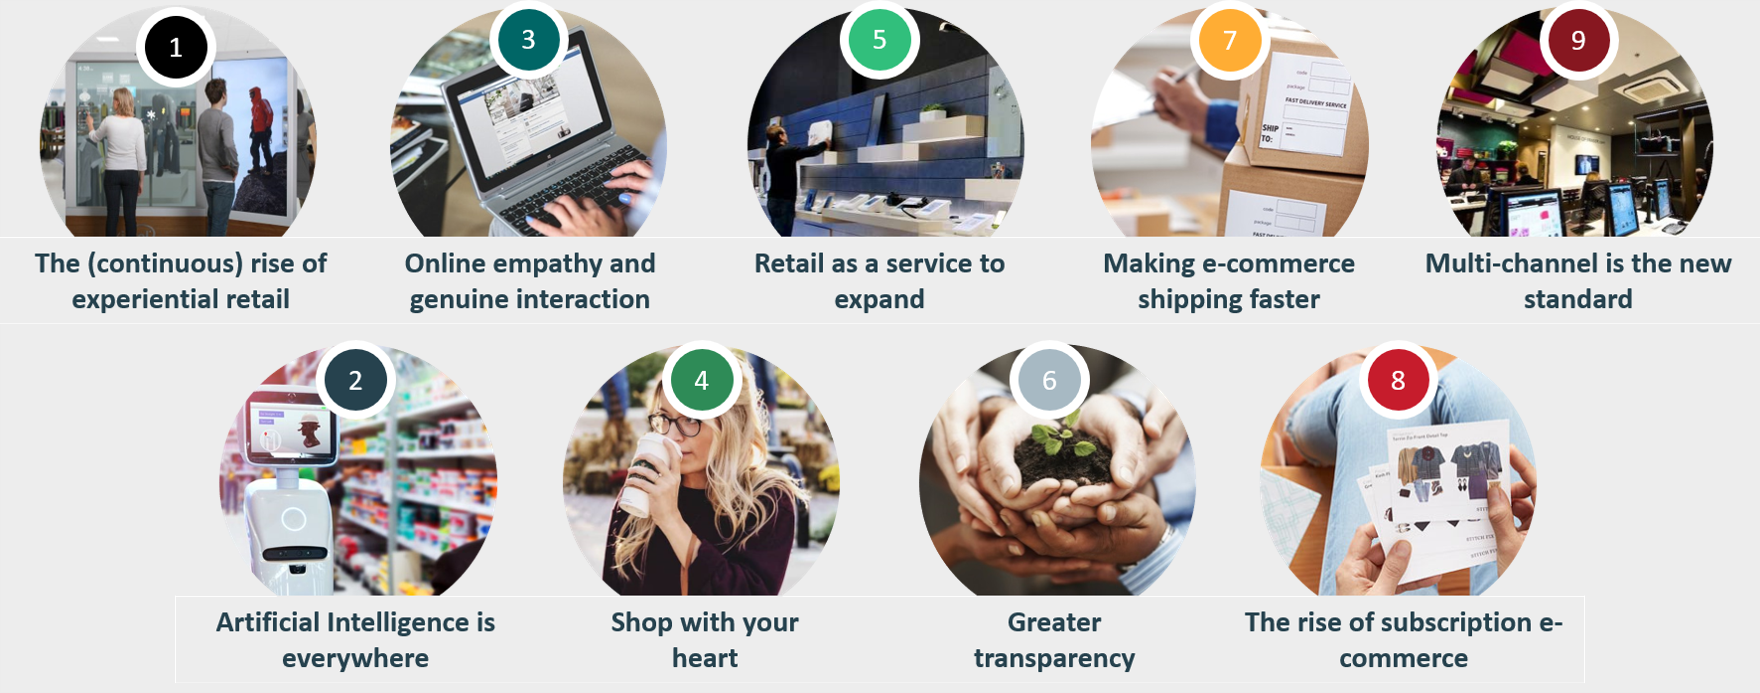 Nine retail trends that we see emerging in the market